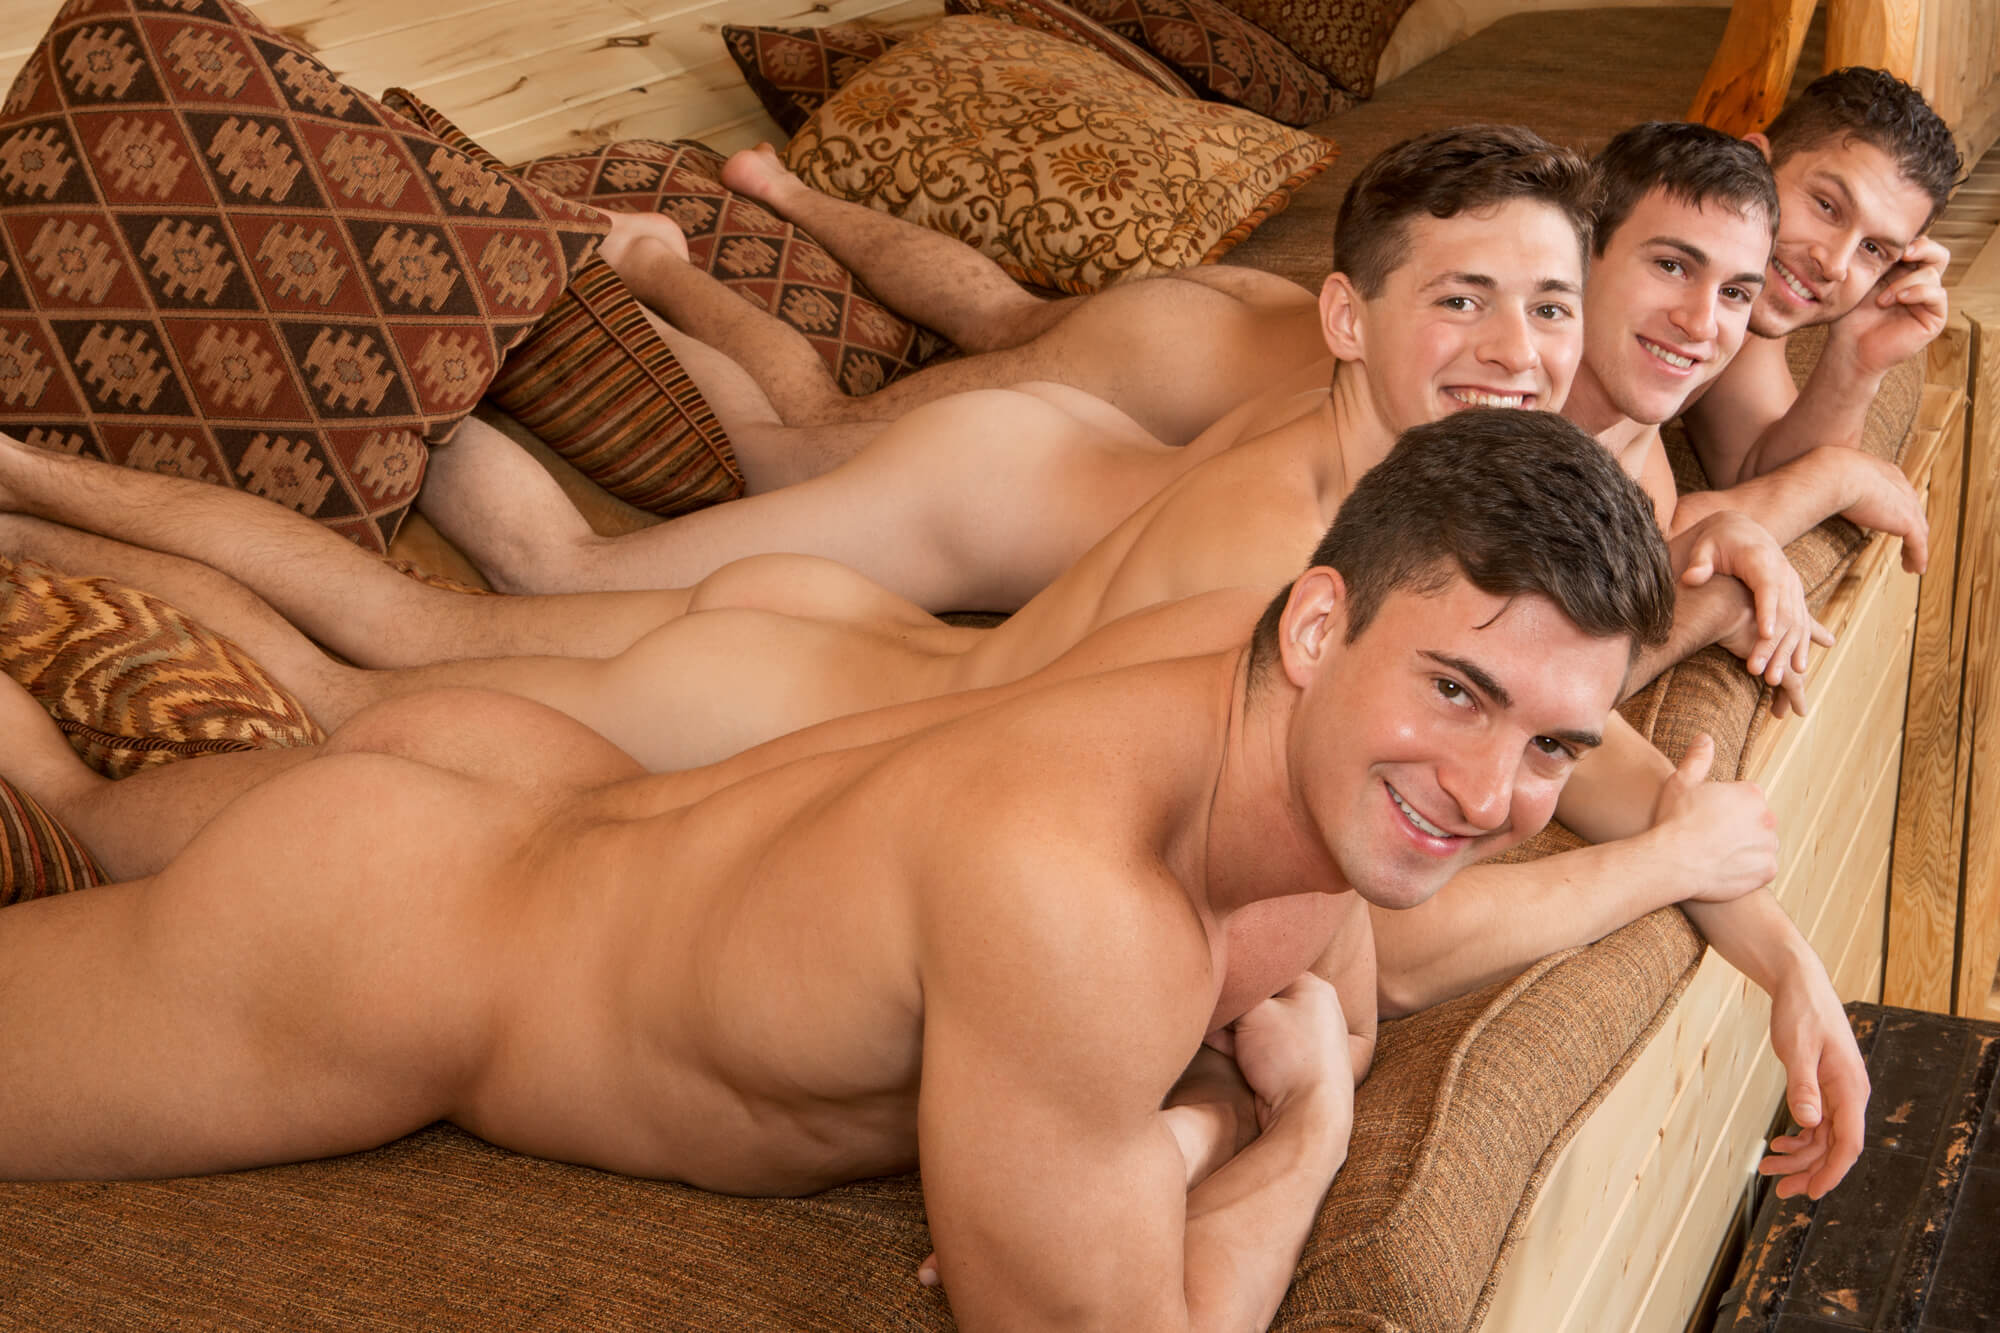 sean cody winter getaway day 4 brodie joey lane rowan gay porn blog image 14